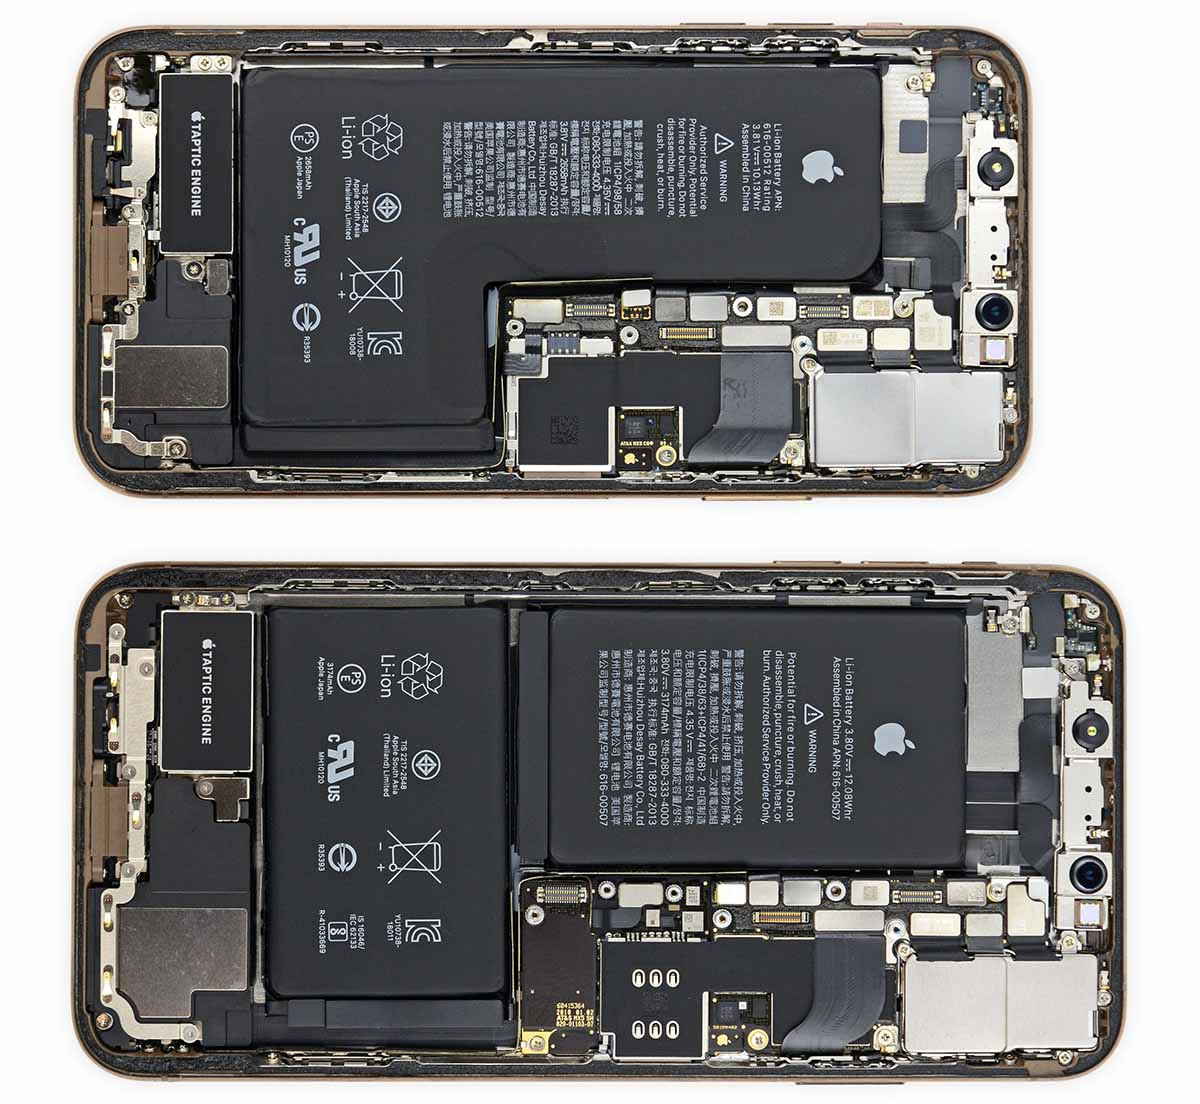 iPhone Battery Life Is Getting Worse With Each Successive Generation